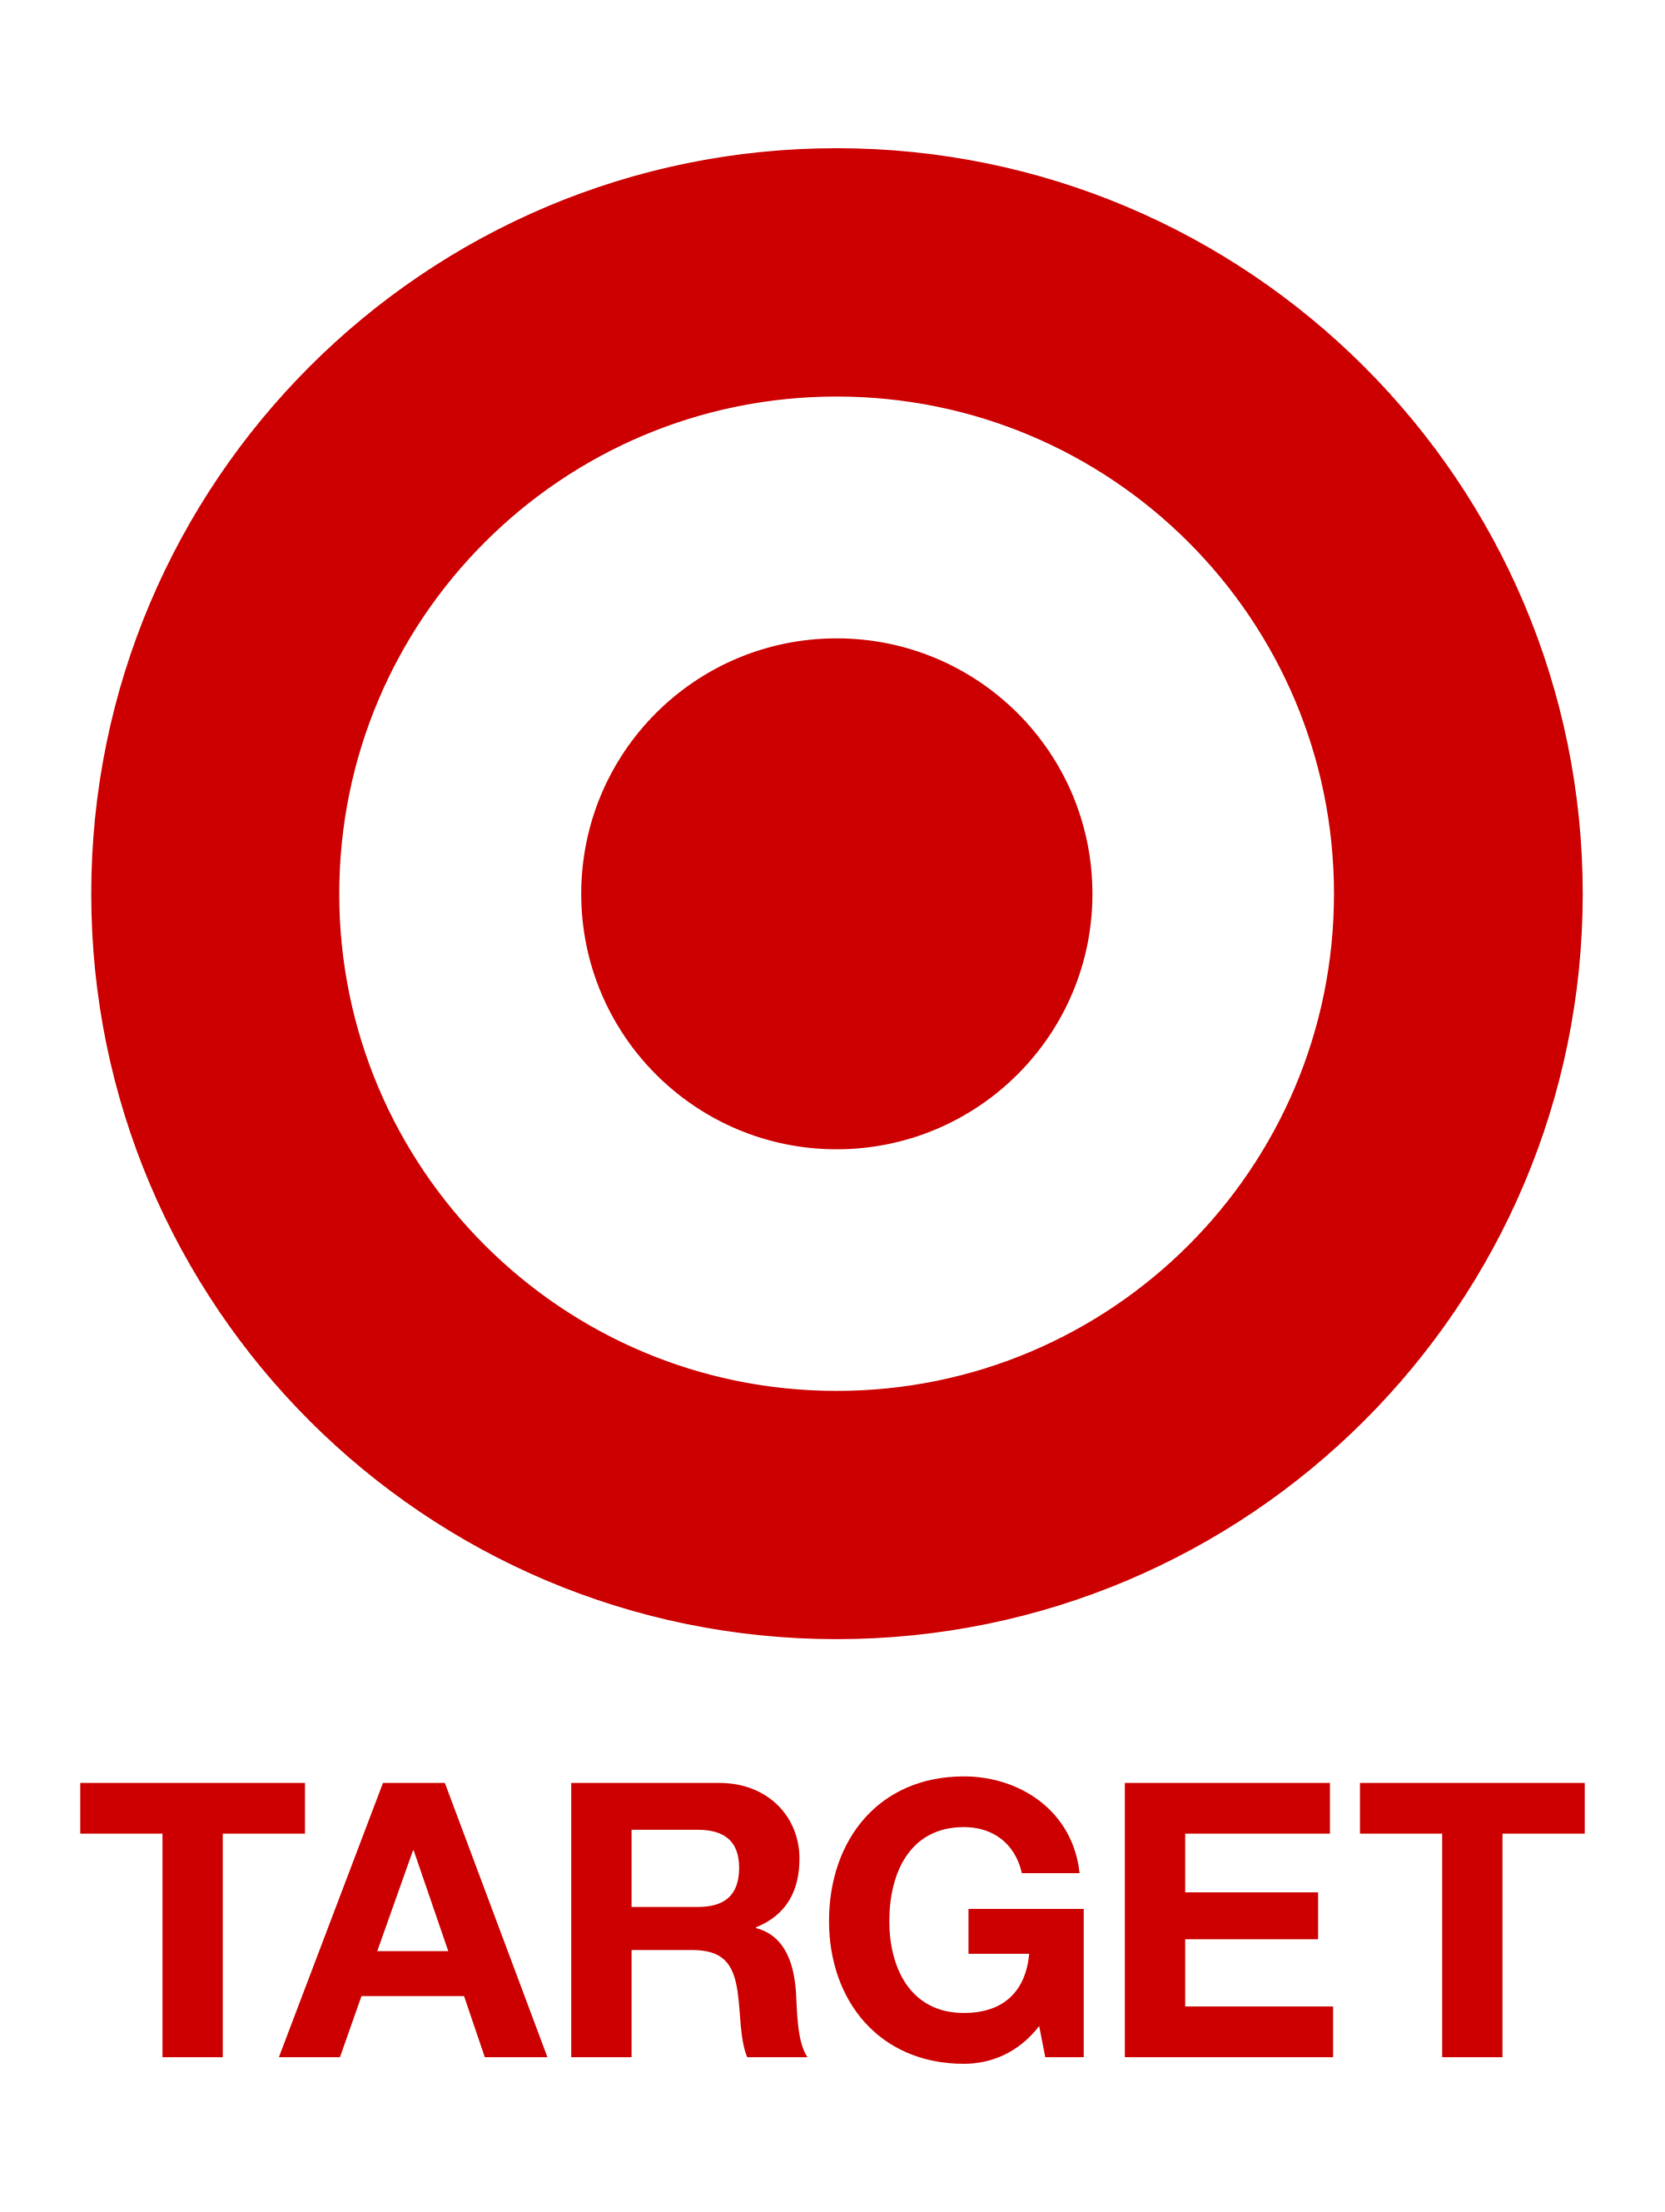 Target Toys Coupon: $25 off $100 or - Slickdeals.net